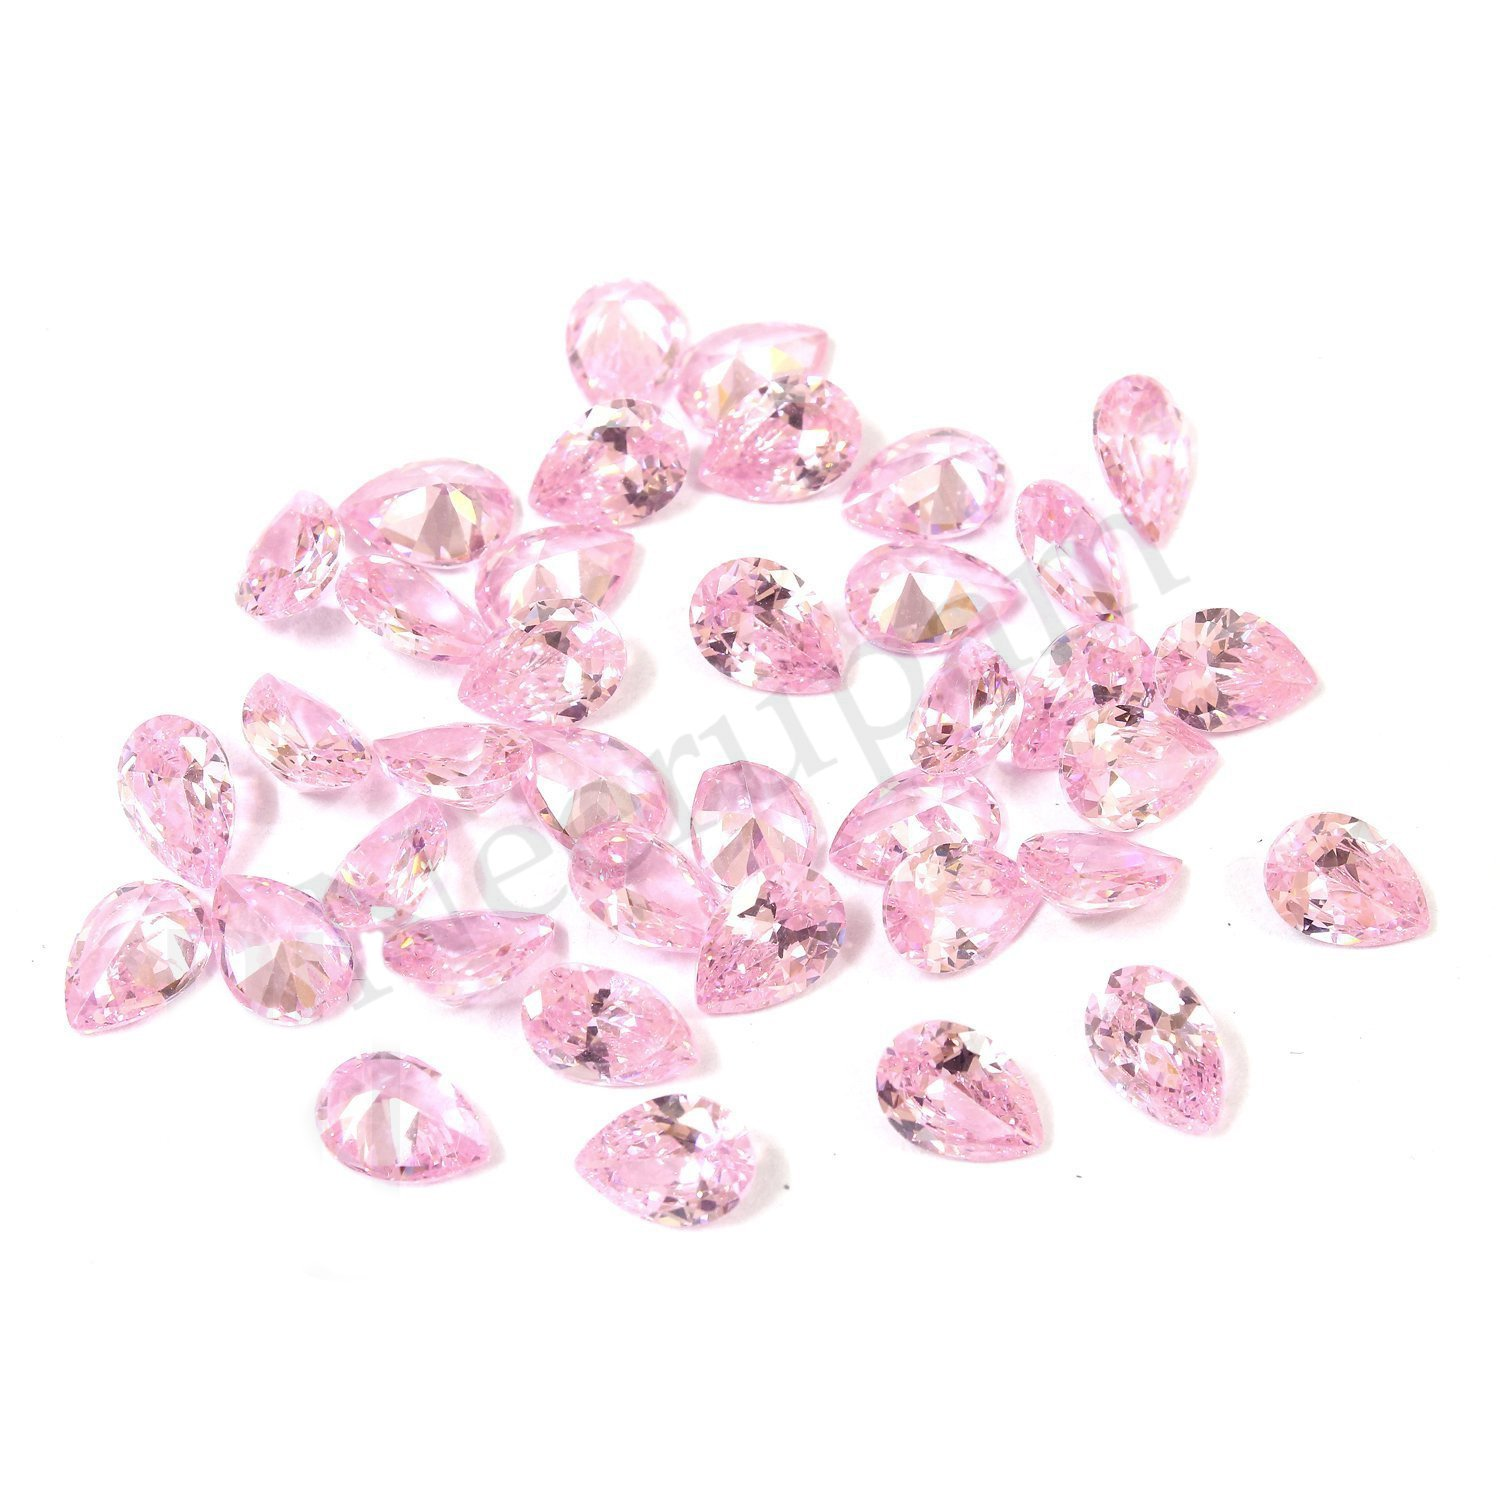 Neerupam Collection Pink Colour Cubic Zirconia AAA Quality Diamond Cut Pears Shape loose gemstone by Neerupam Collection